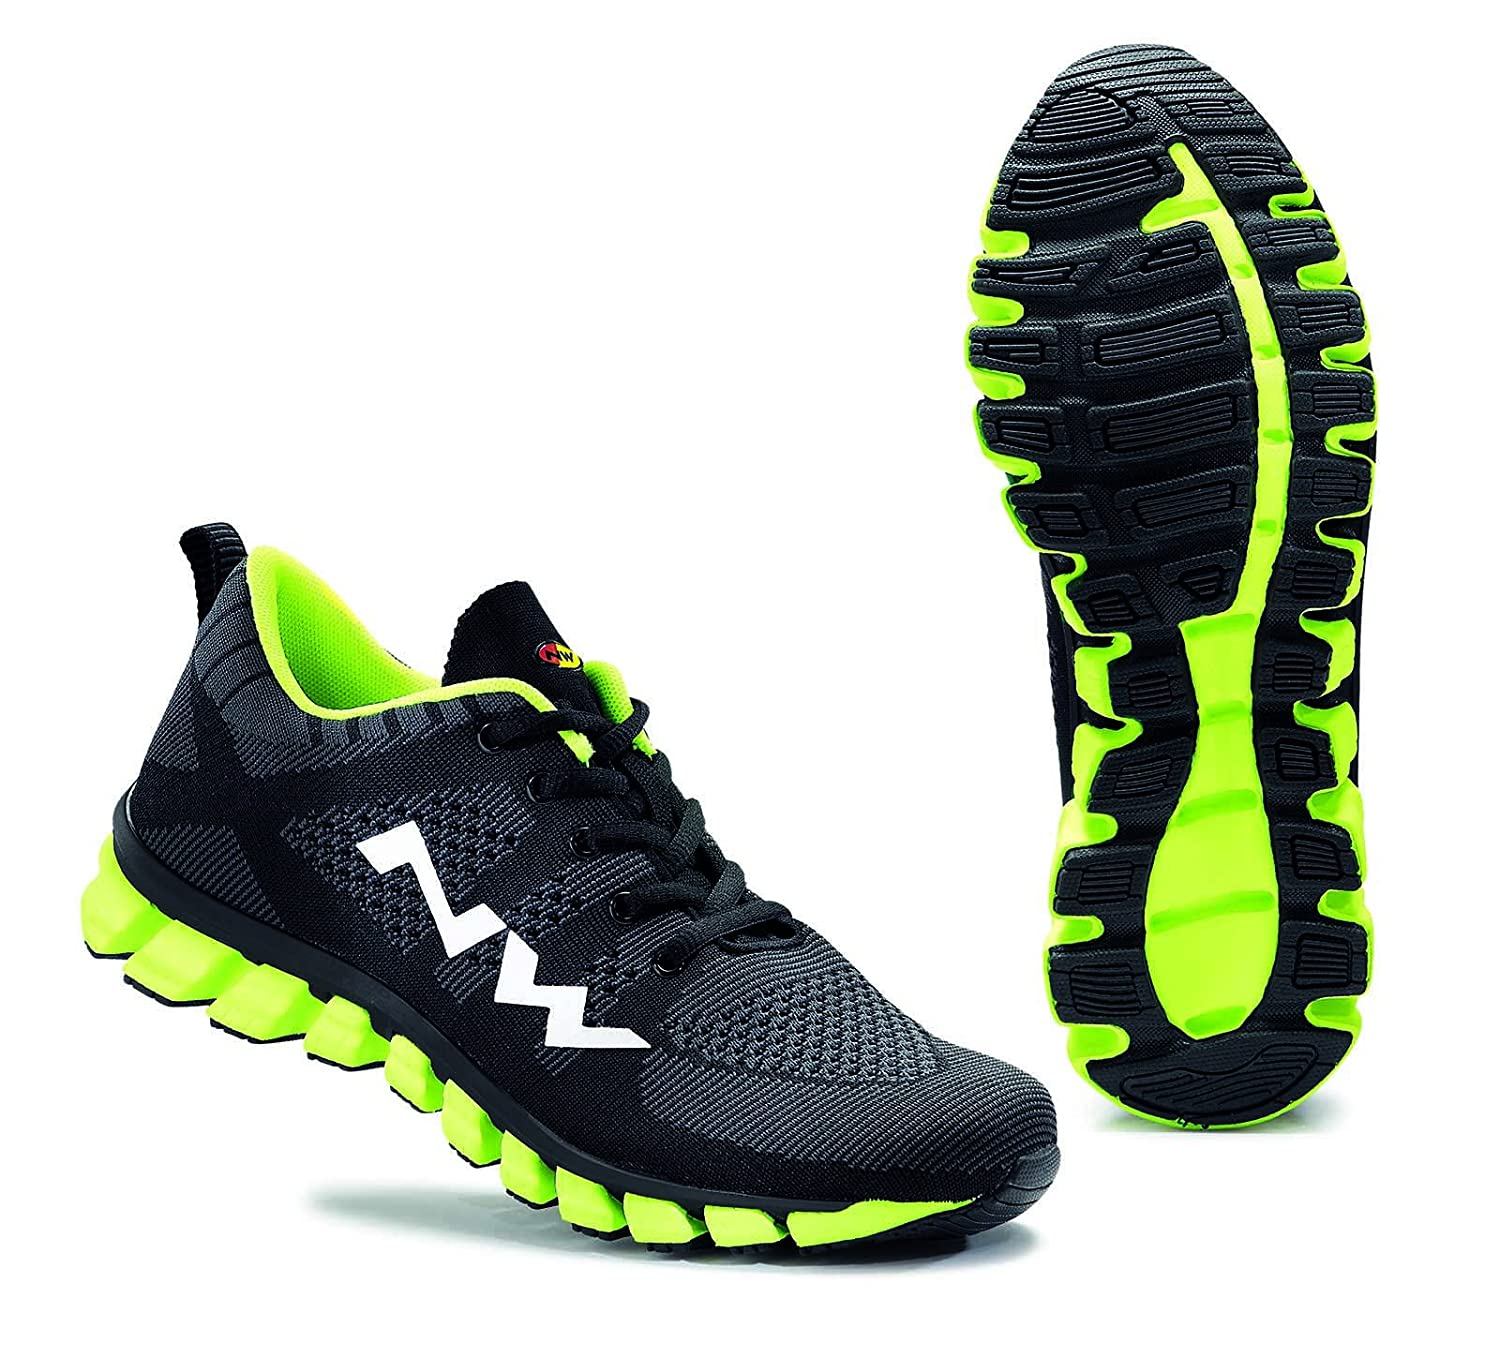 超人気新品 NORTHWAVE(ノースウェーブ) 2 PODIUM FLUO 2 BLACK/YELLOW FLUO BLACK/YELLOW サイズ:44 B01LZNJ0CC, 芦屋スタイル モア:e93c3a48 --- arianechie.dominiotemporario.com